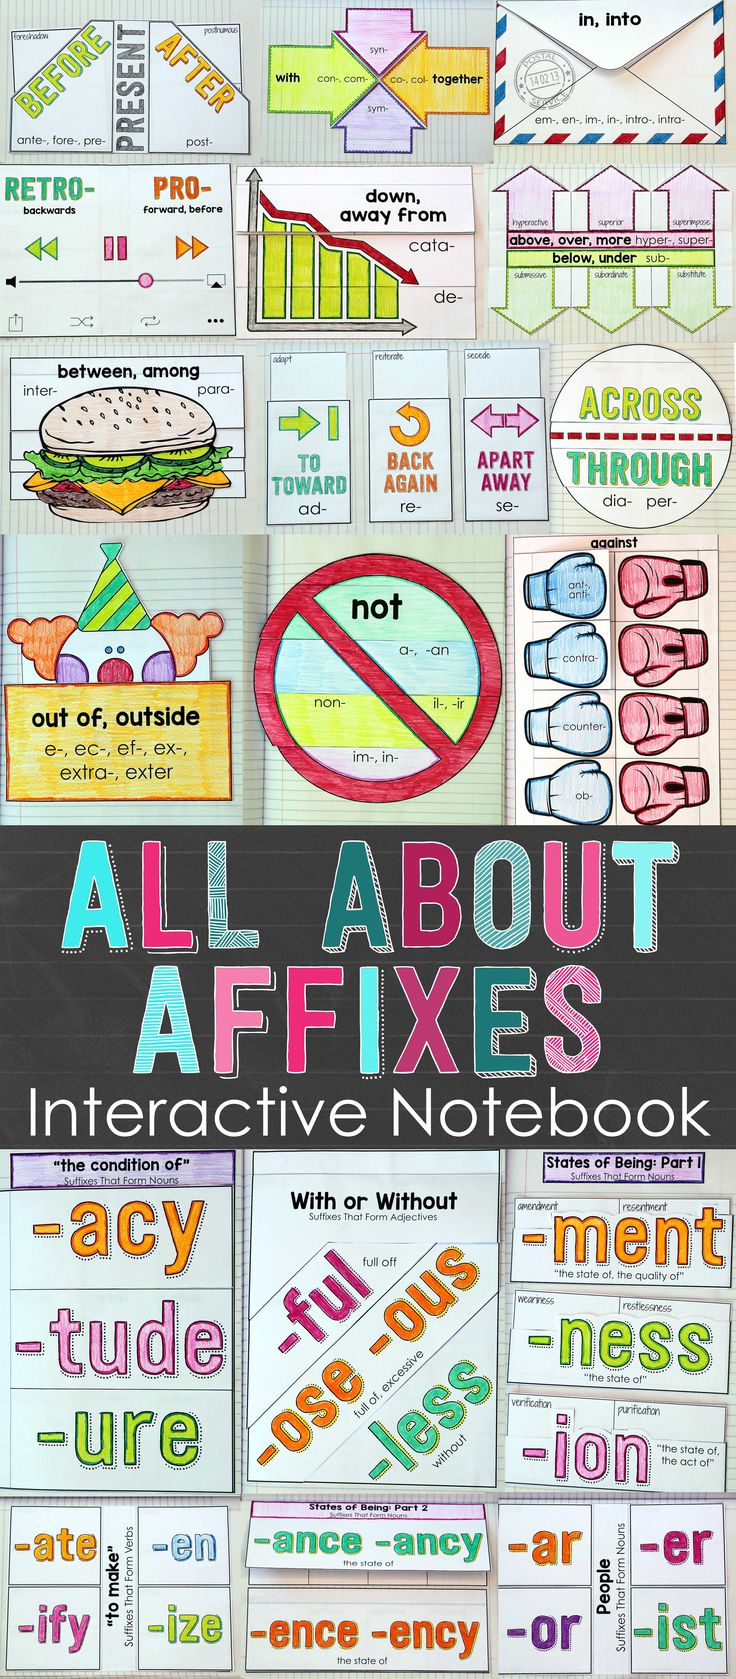 Teach prefixes and suffixes in a meaningful and engaging way! Your students will love learning affixes with this hands-on resource. Included are 25 Interactive Notebook activities that will help your students understand the meaning of several words related to over 85 different affixes. $